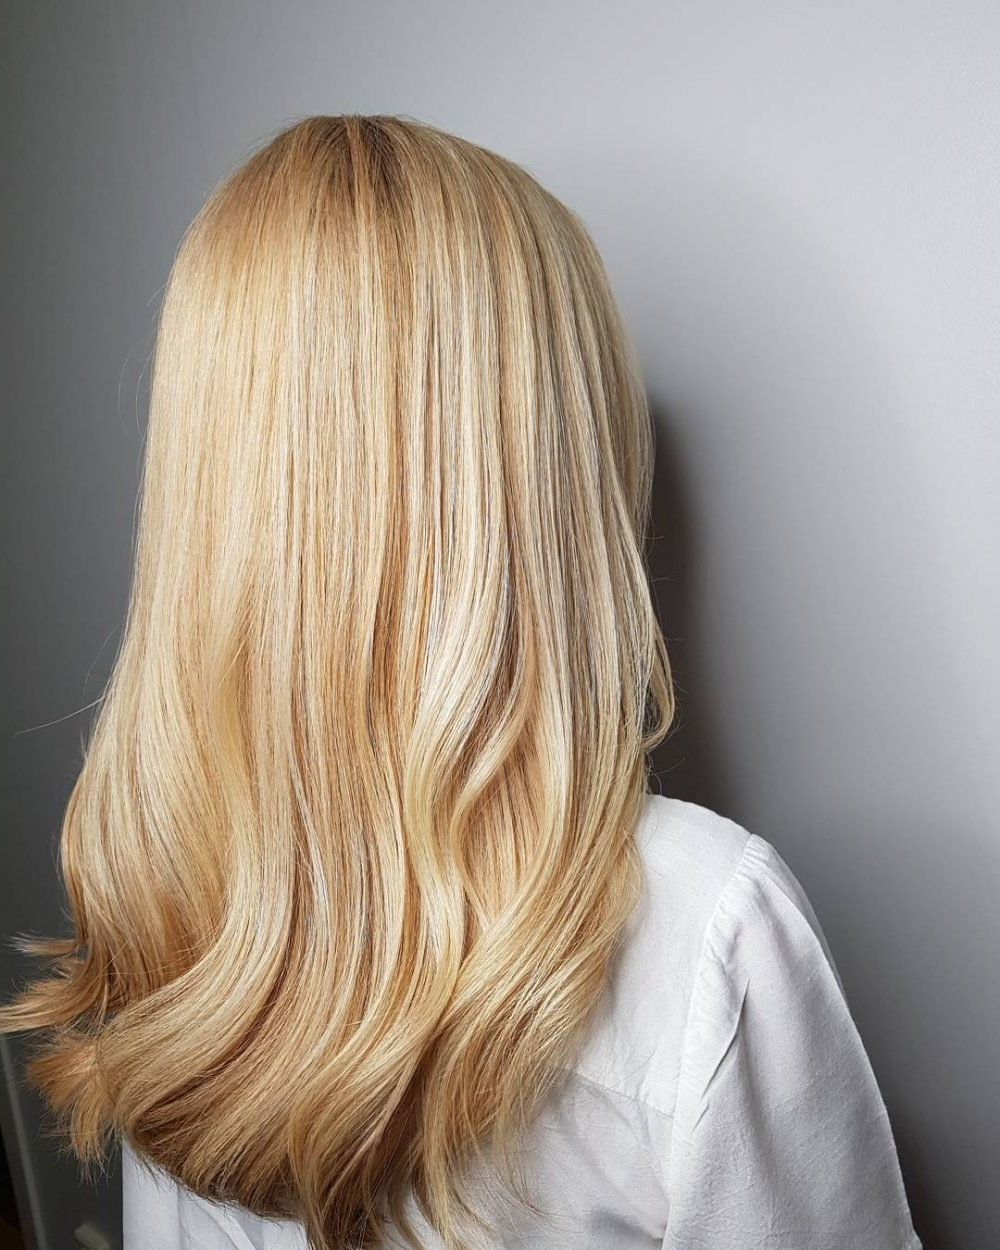 21 Hottest Honey Blonde Hair Color Ideas Of 2018 Intended For Recent Light Ash Locks Blonde Hairstyles (View 9 of 20)